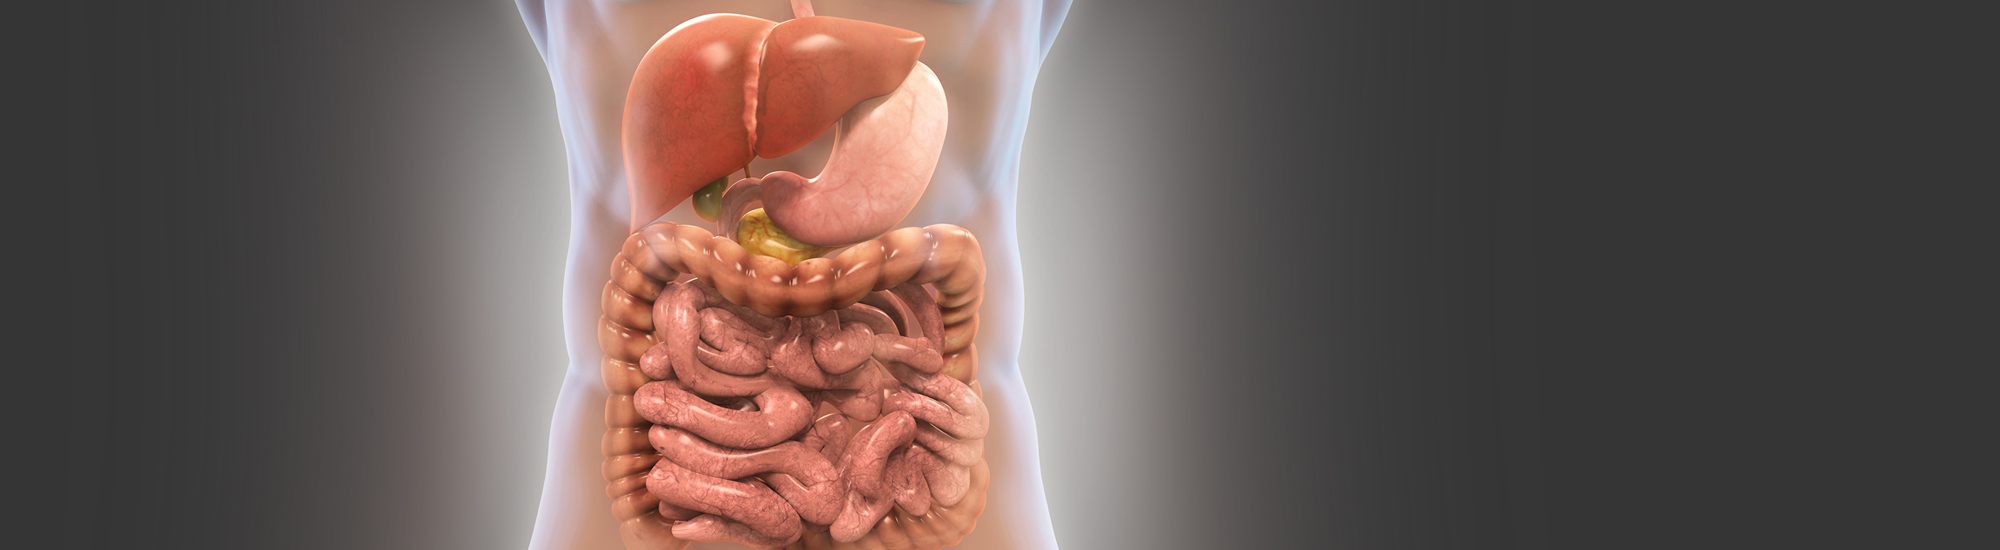 Ayurvedic treatment for Gastrointestinal system- concept of agni Causes